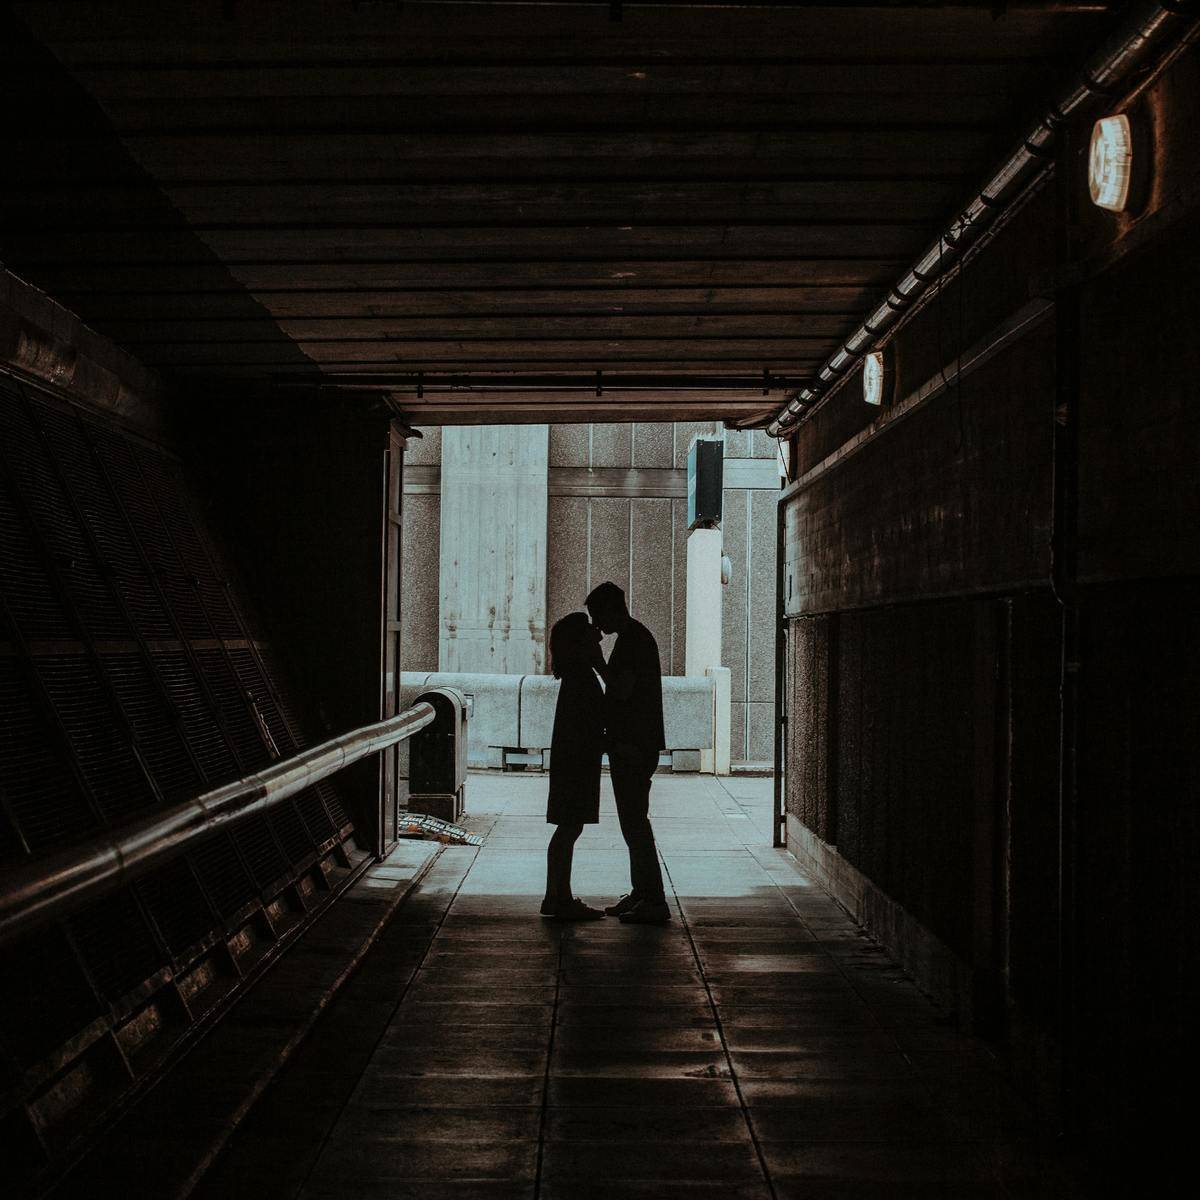 couple silhouette in alley